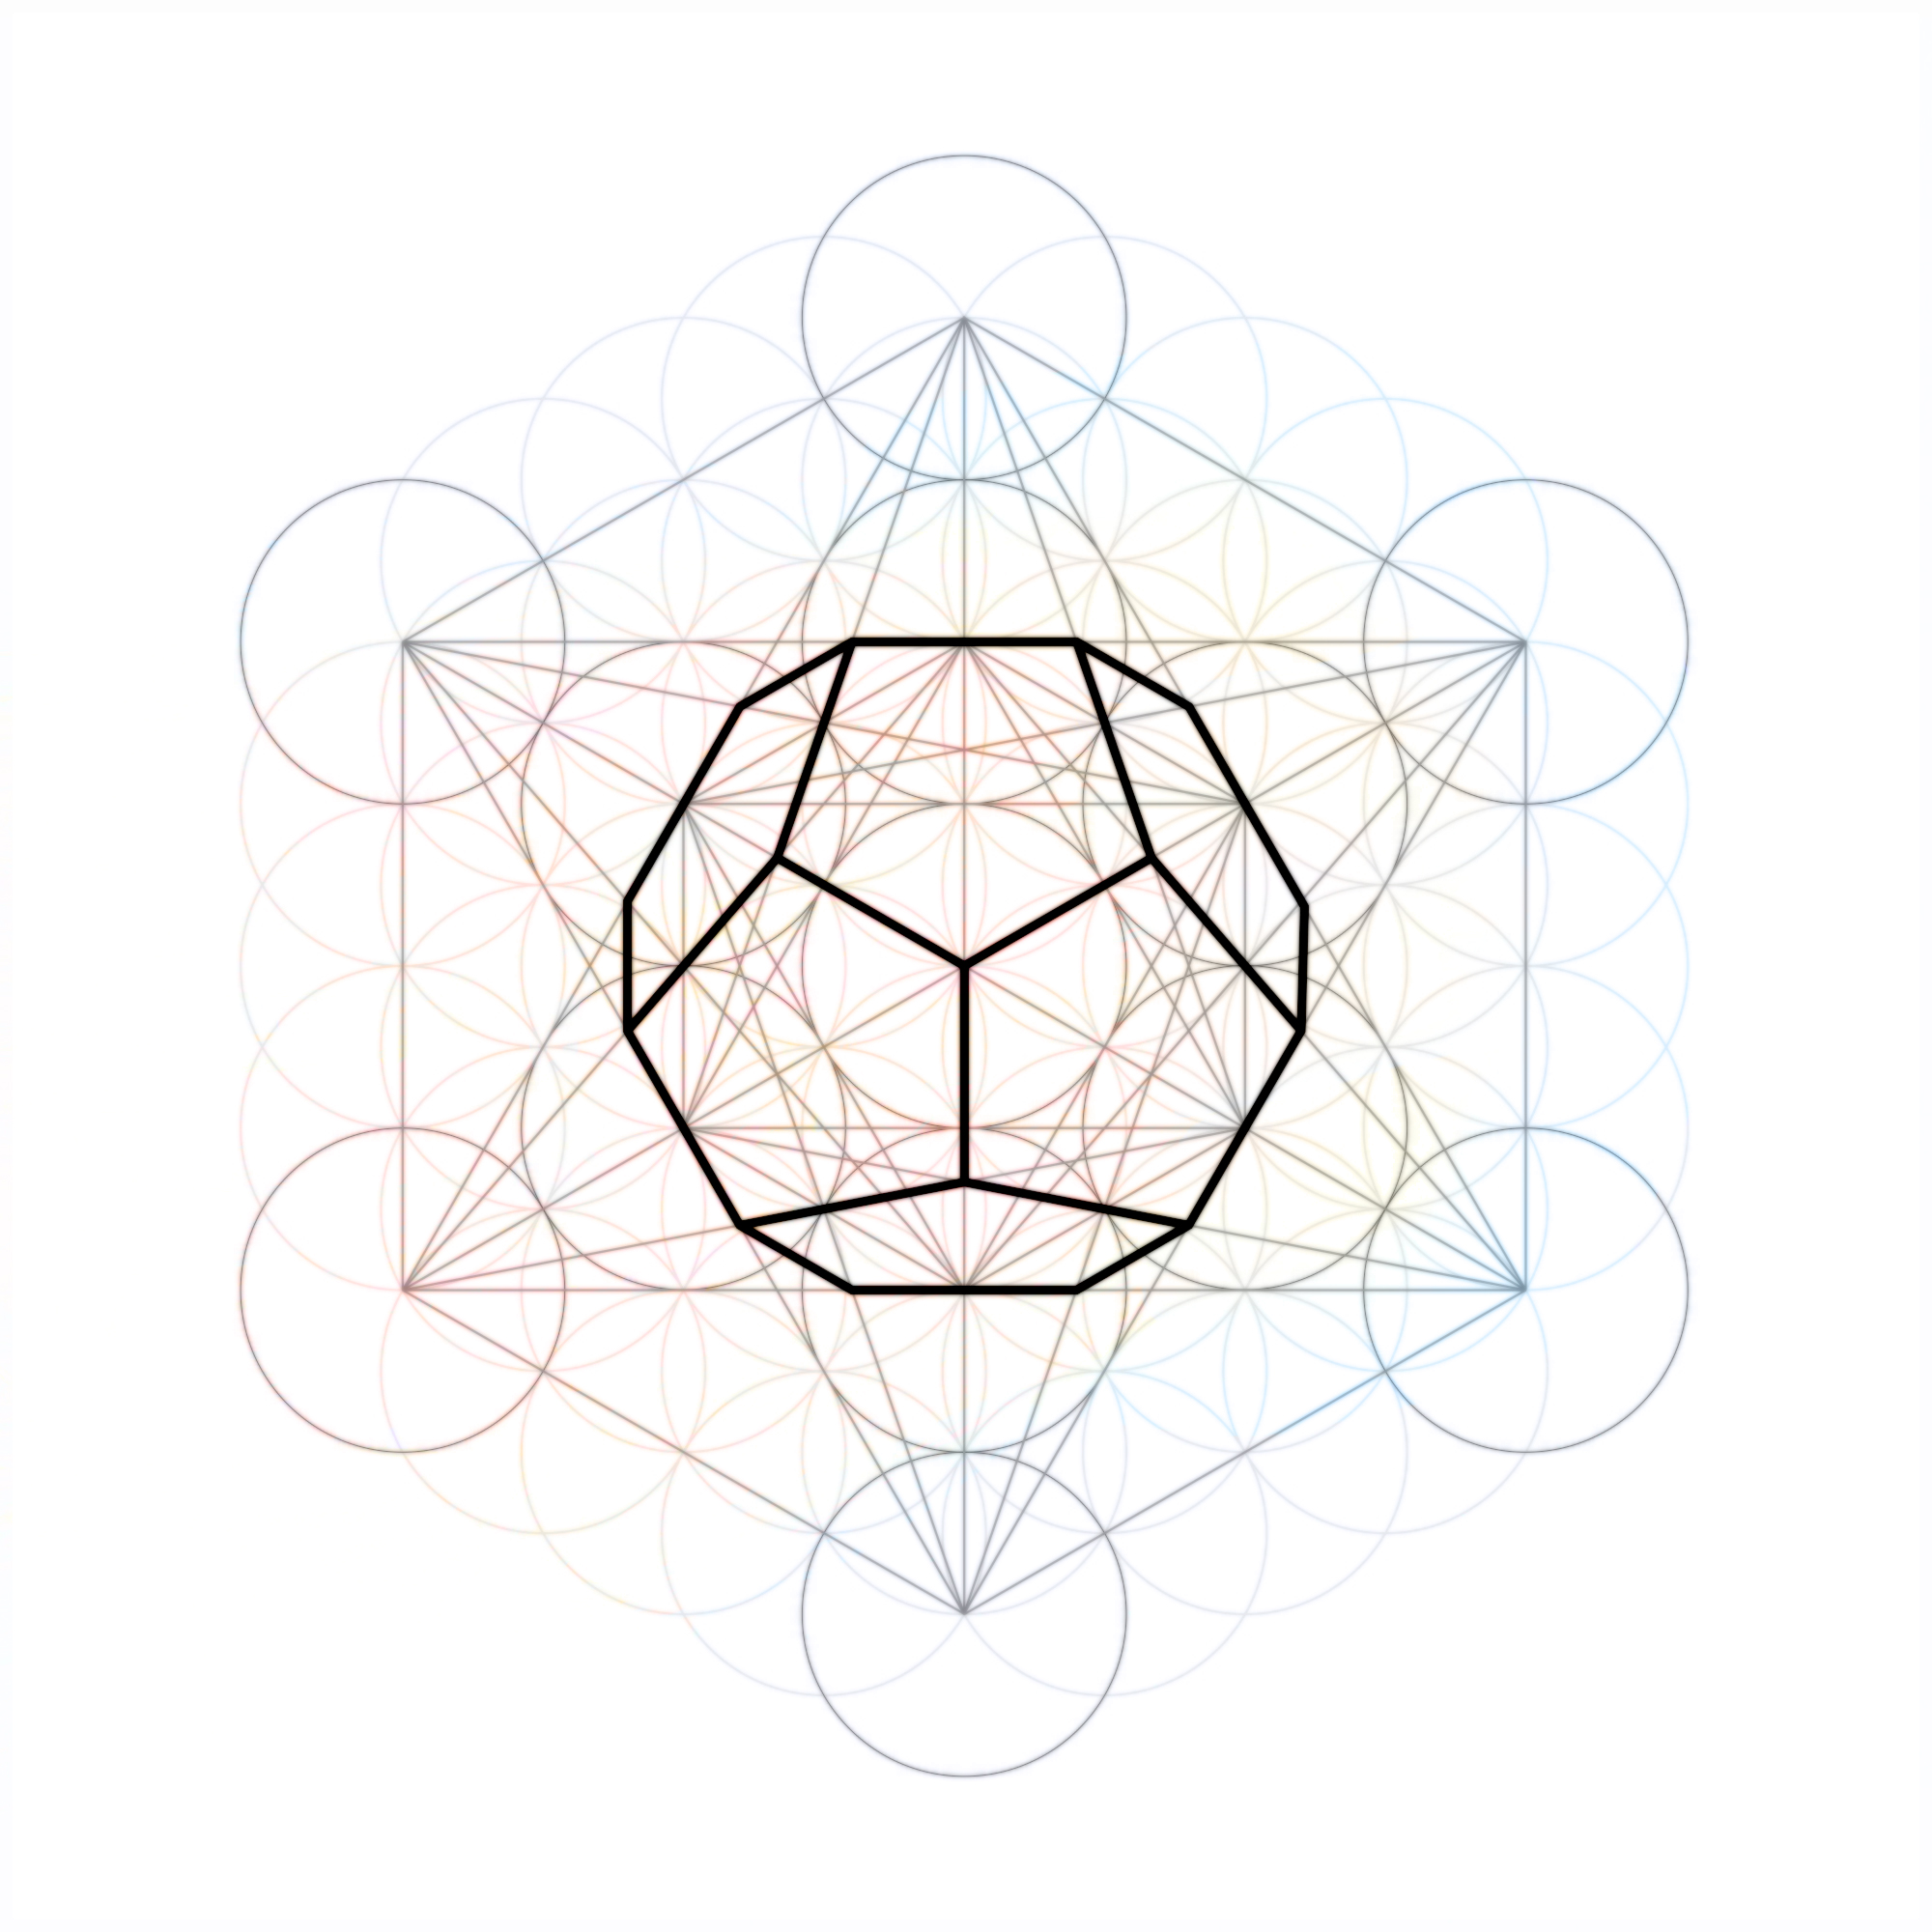 metatrons_dodecahedron_fadeout